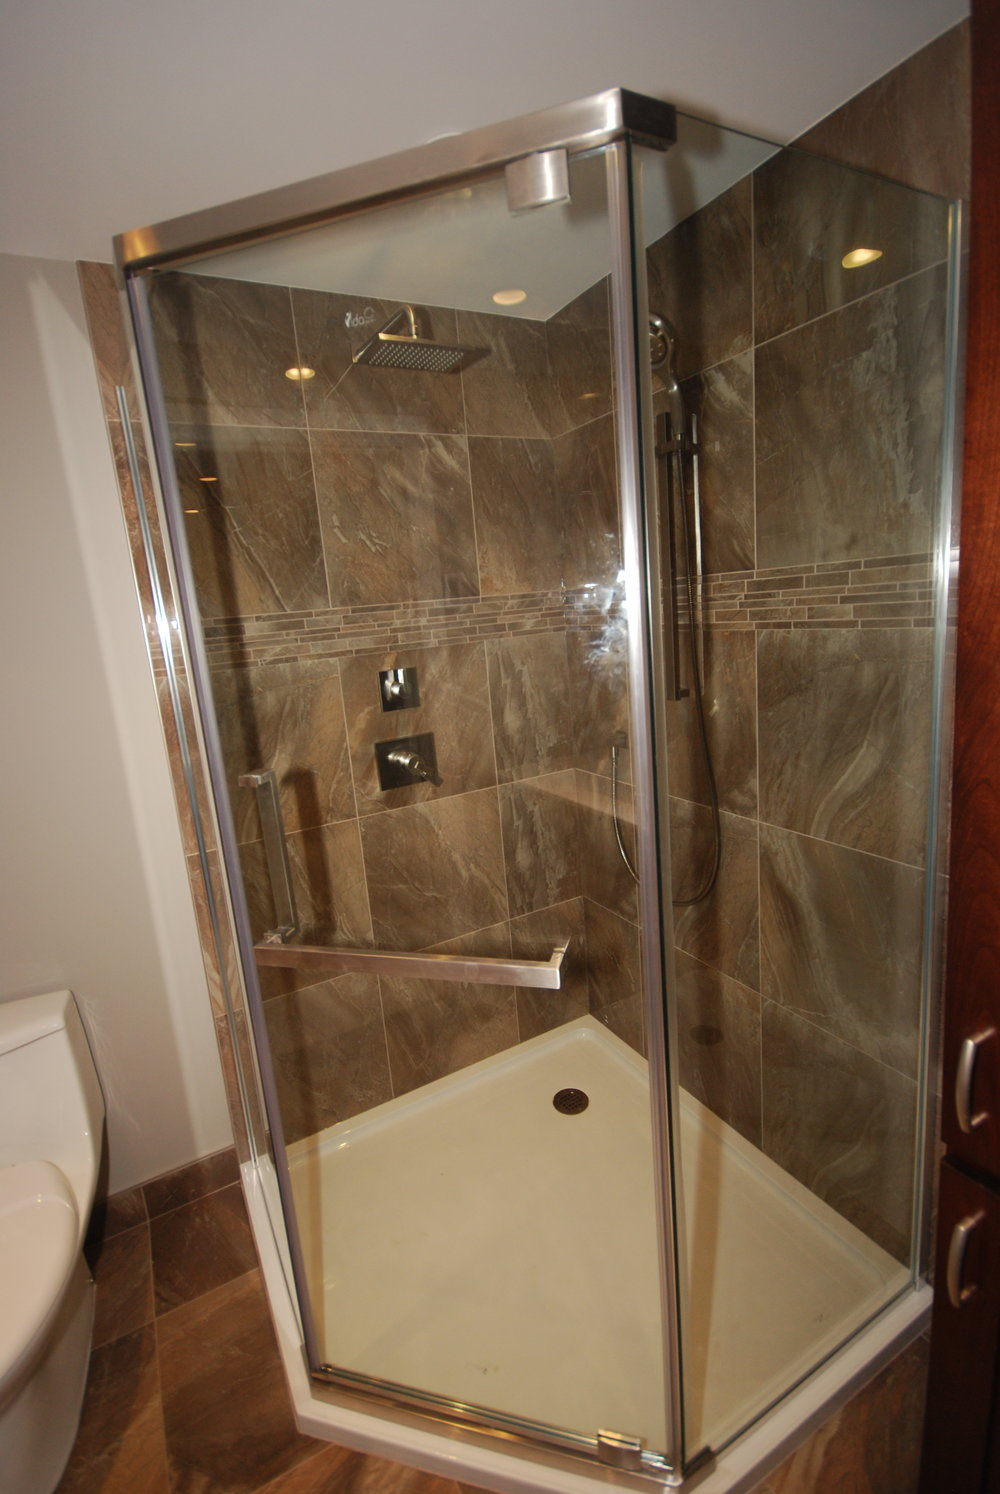 Bathroom Fixtures Etobicoke bathroom — double t contracting inc.